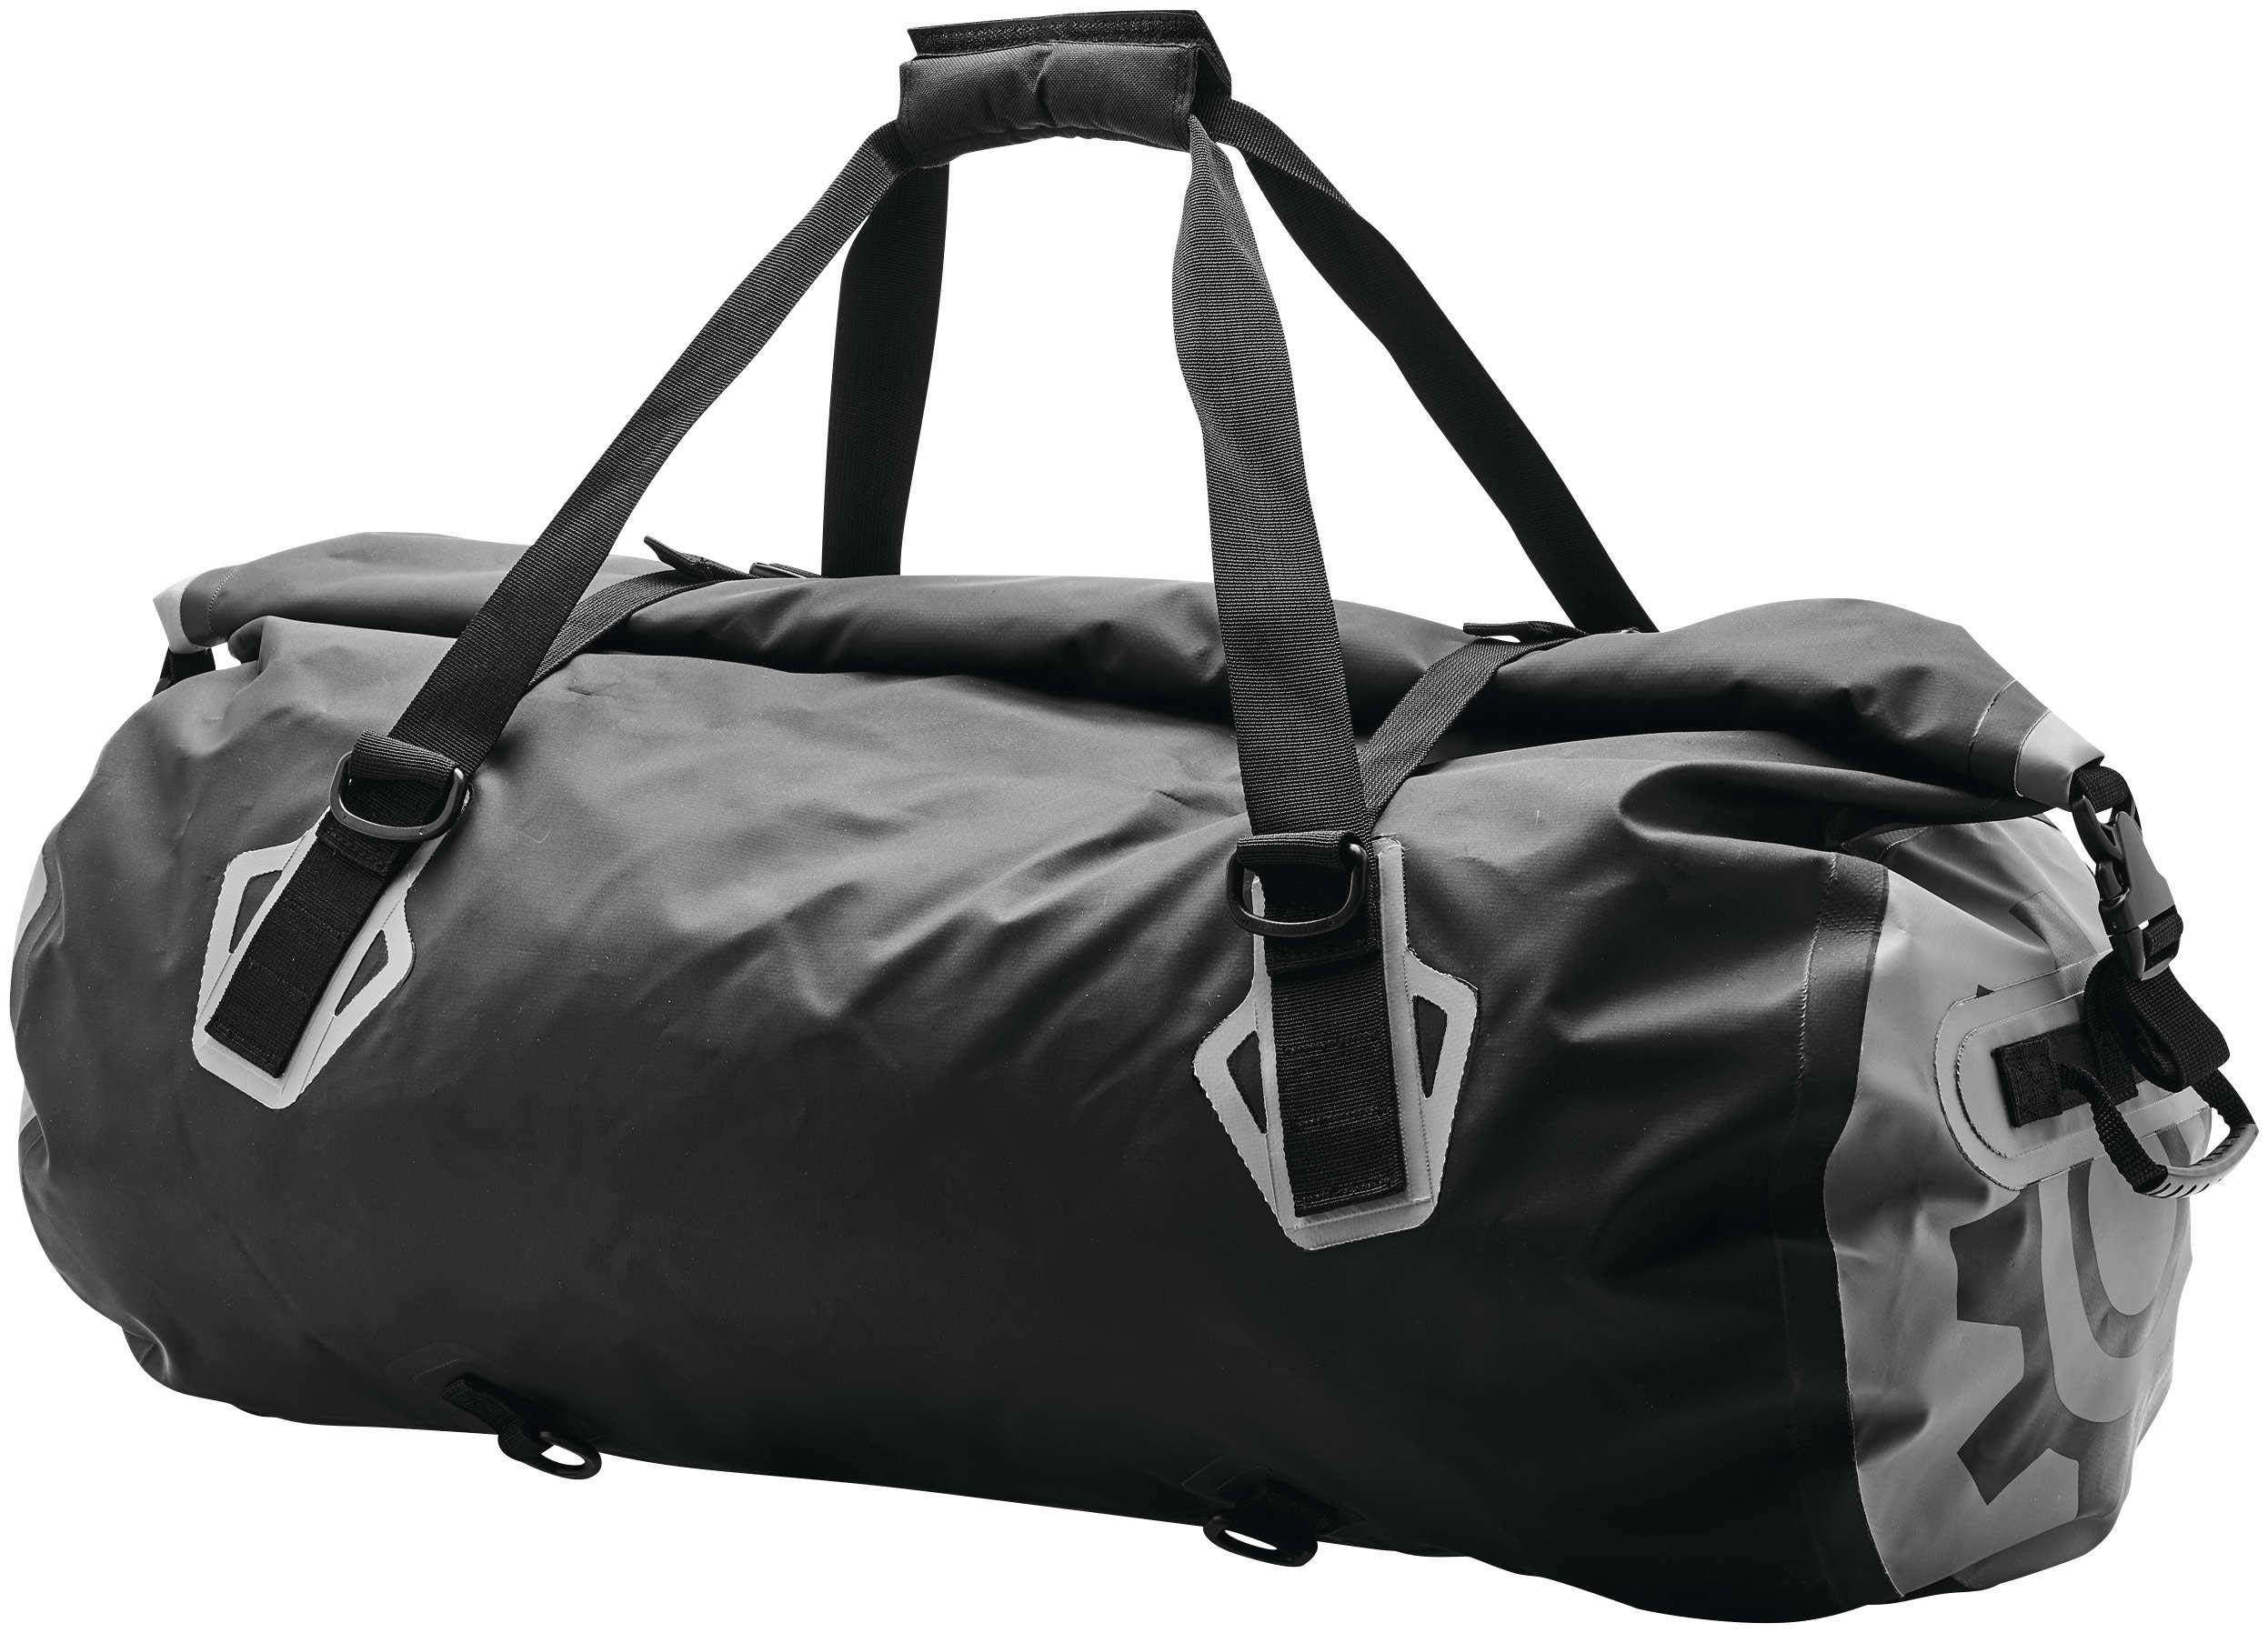 FirstGear Torrent 70L Waterproof Duffel Bag (More Size Options) by FirstGear Luggage (Image #2)